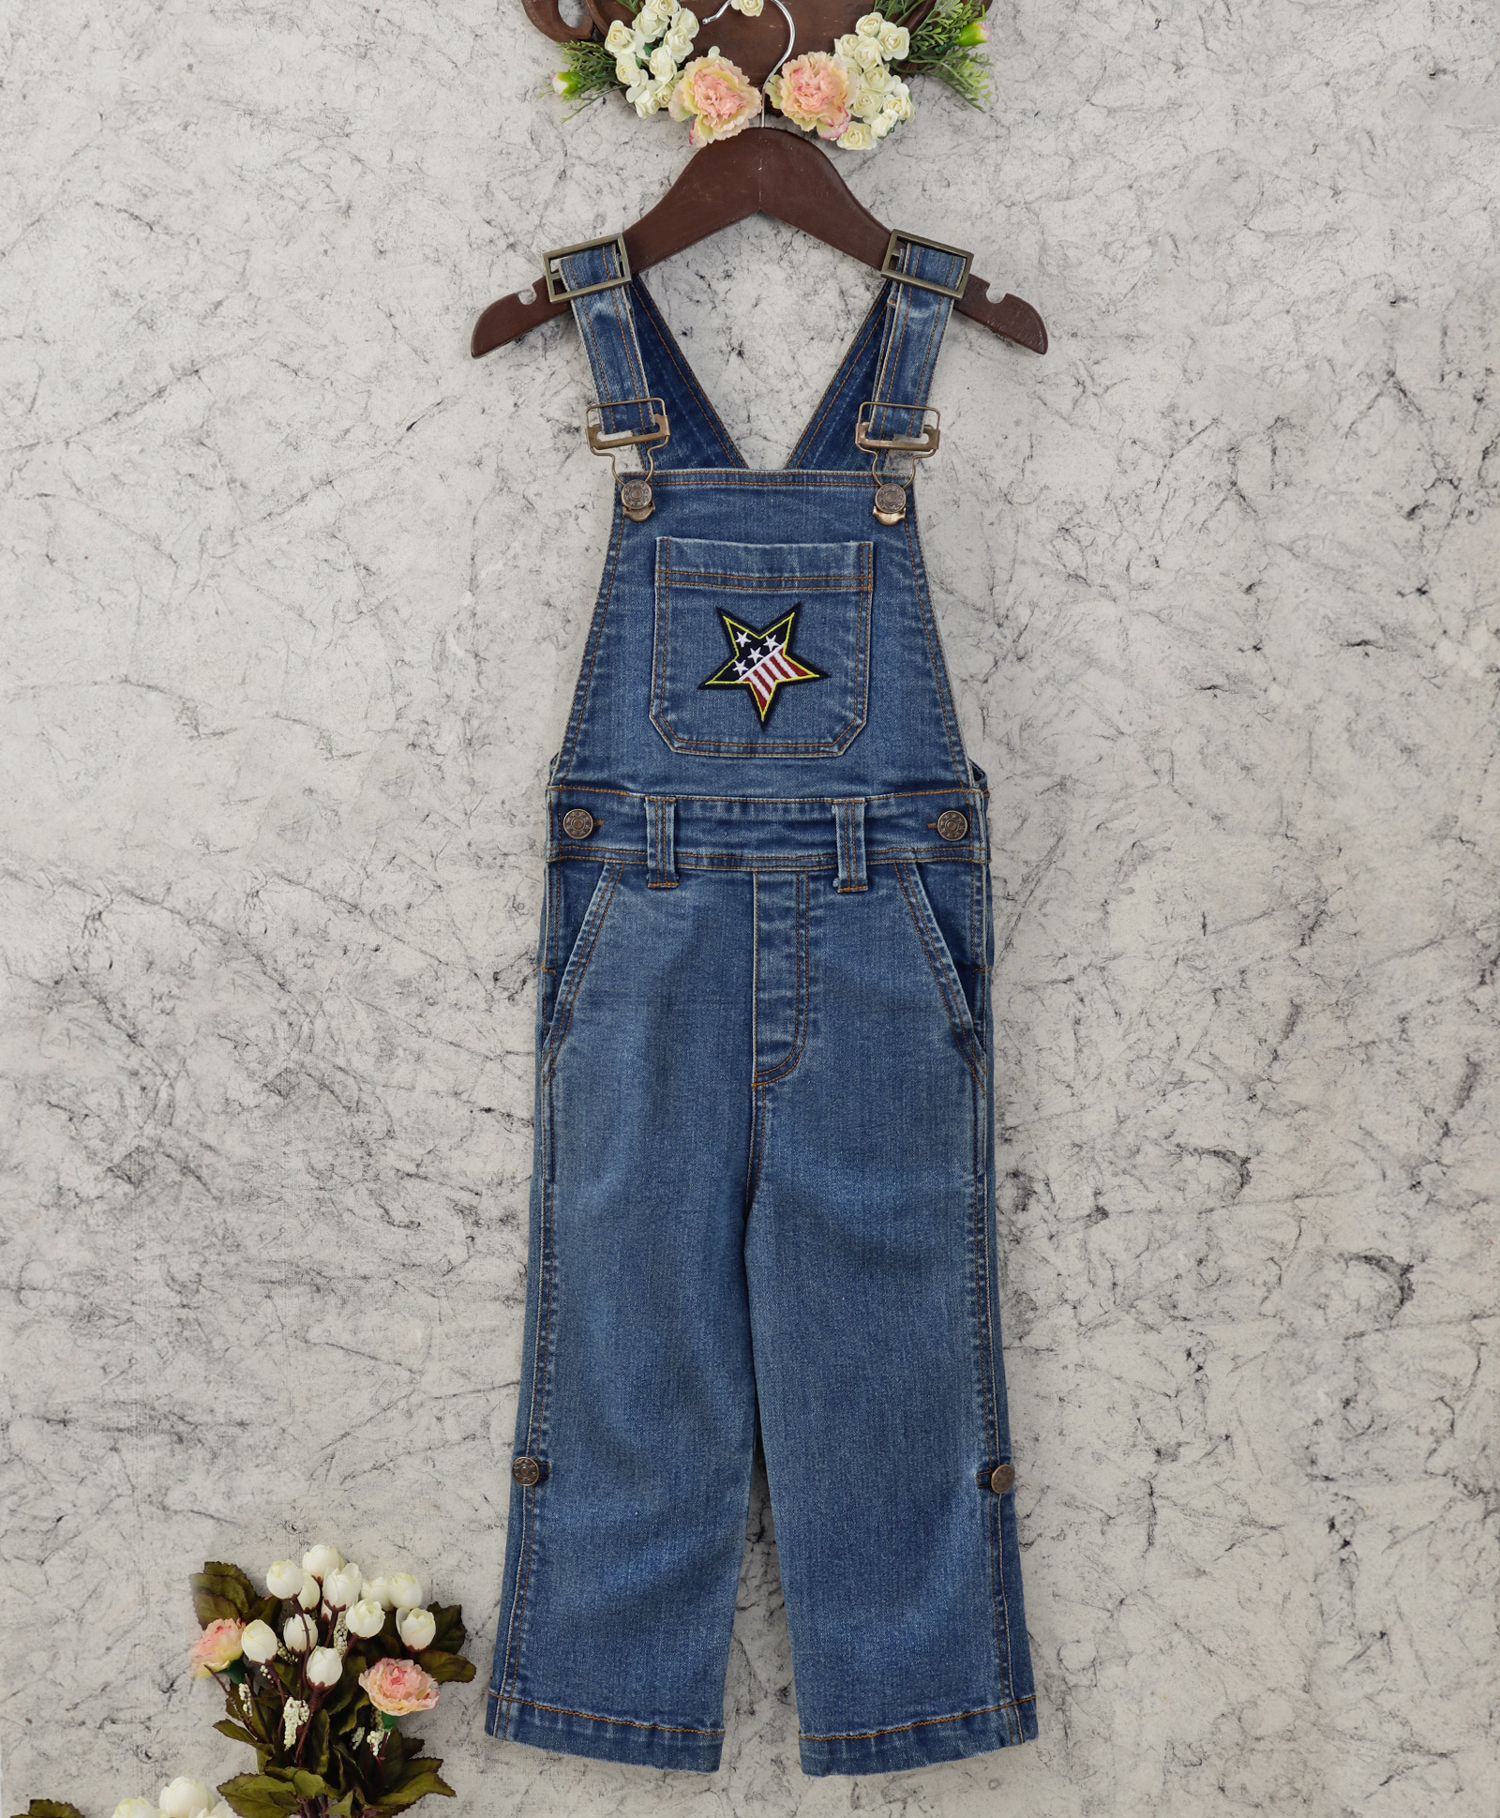 642b91303 Olele Star Patch Denim Dungaree for Boys